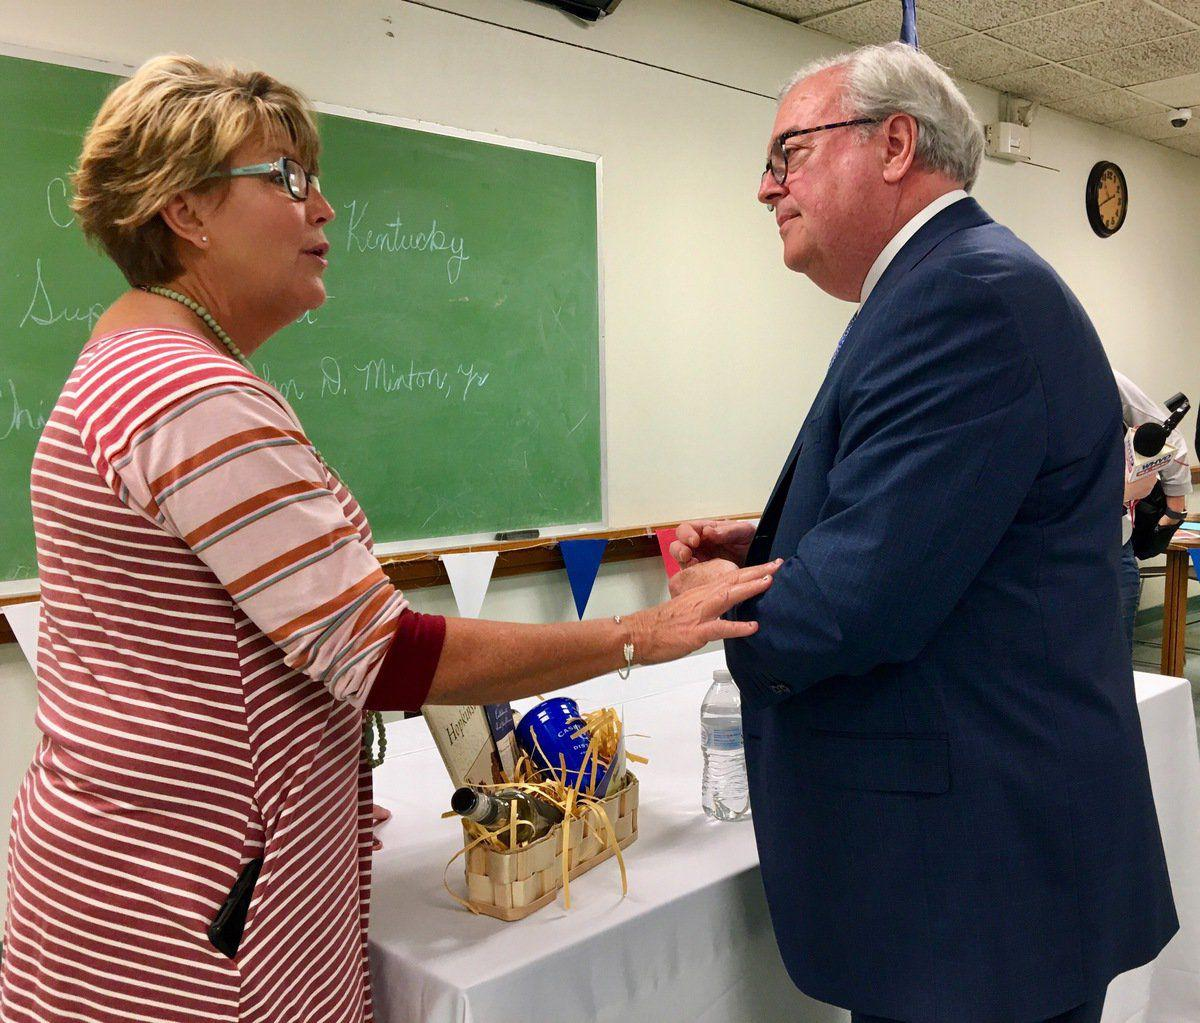 Chief justice featured speaker at Constitution Day event